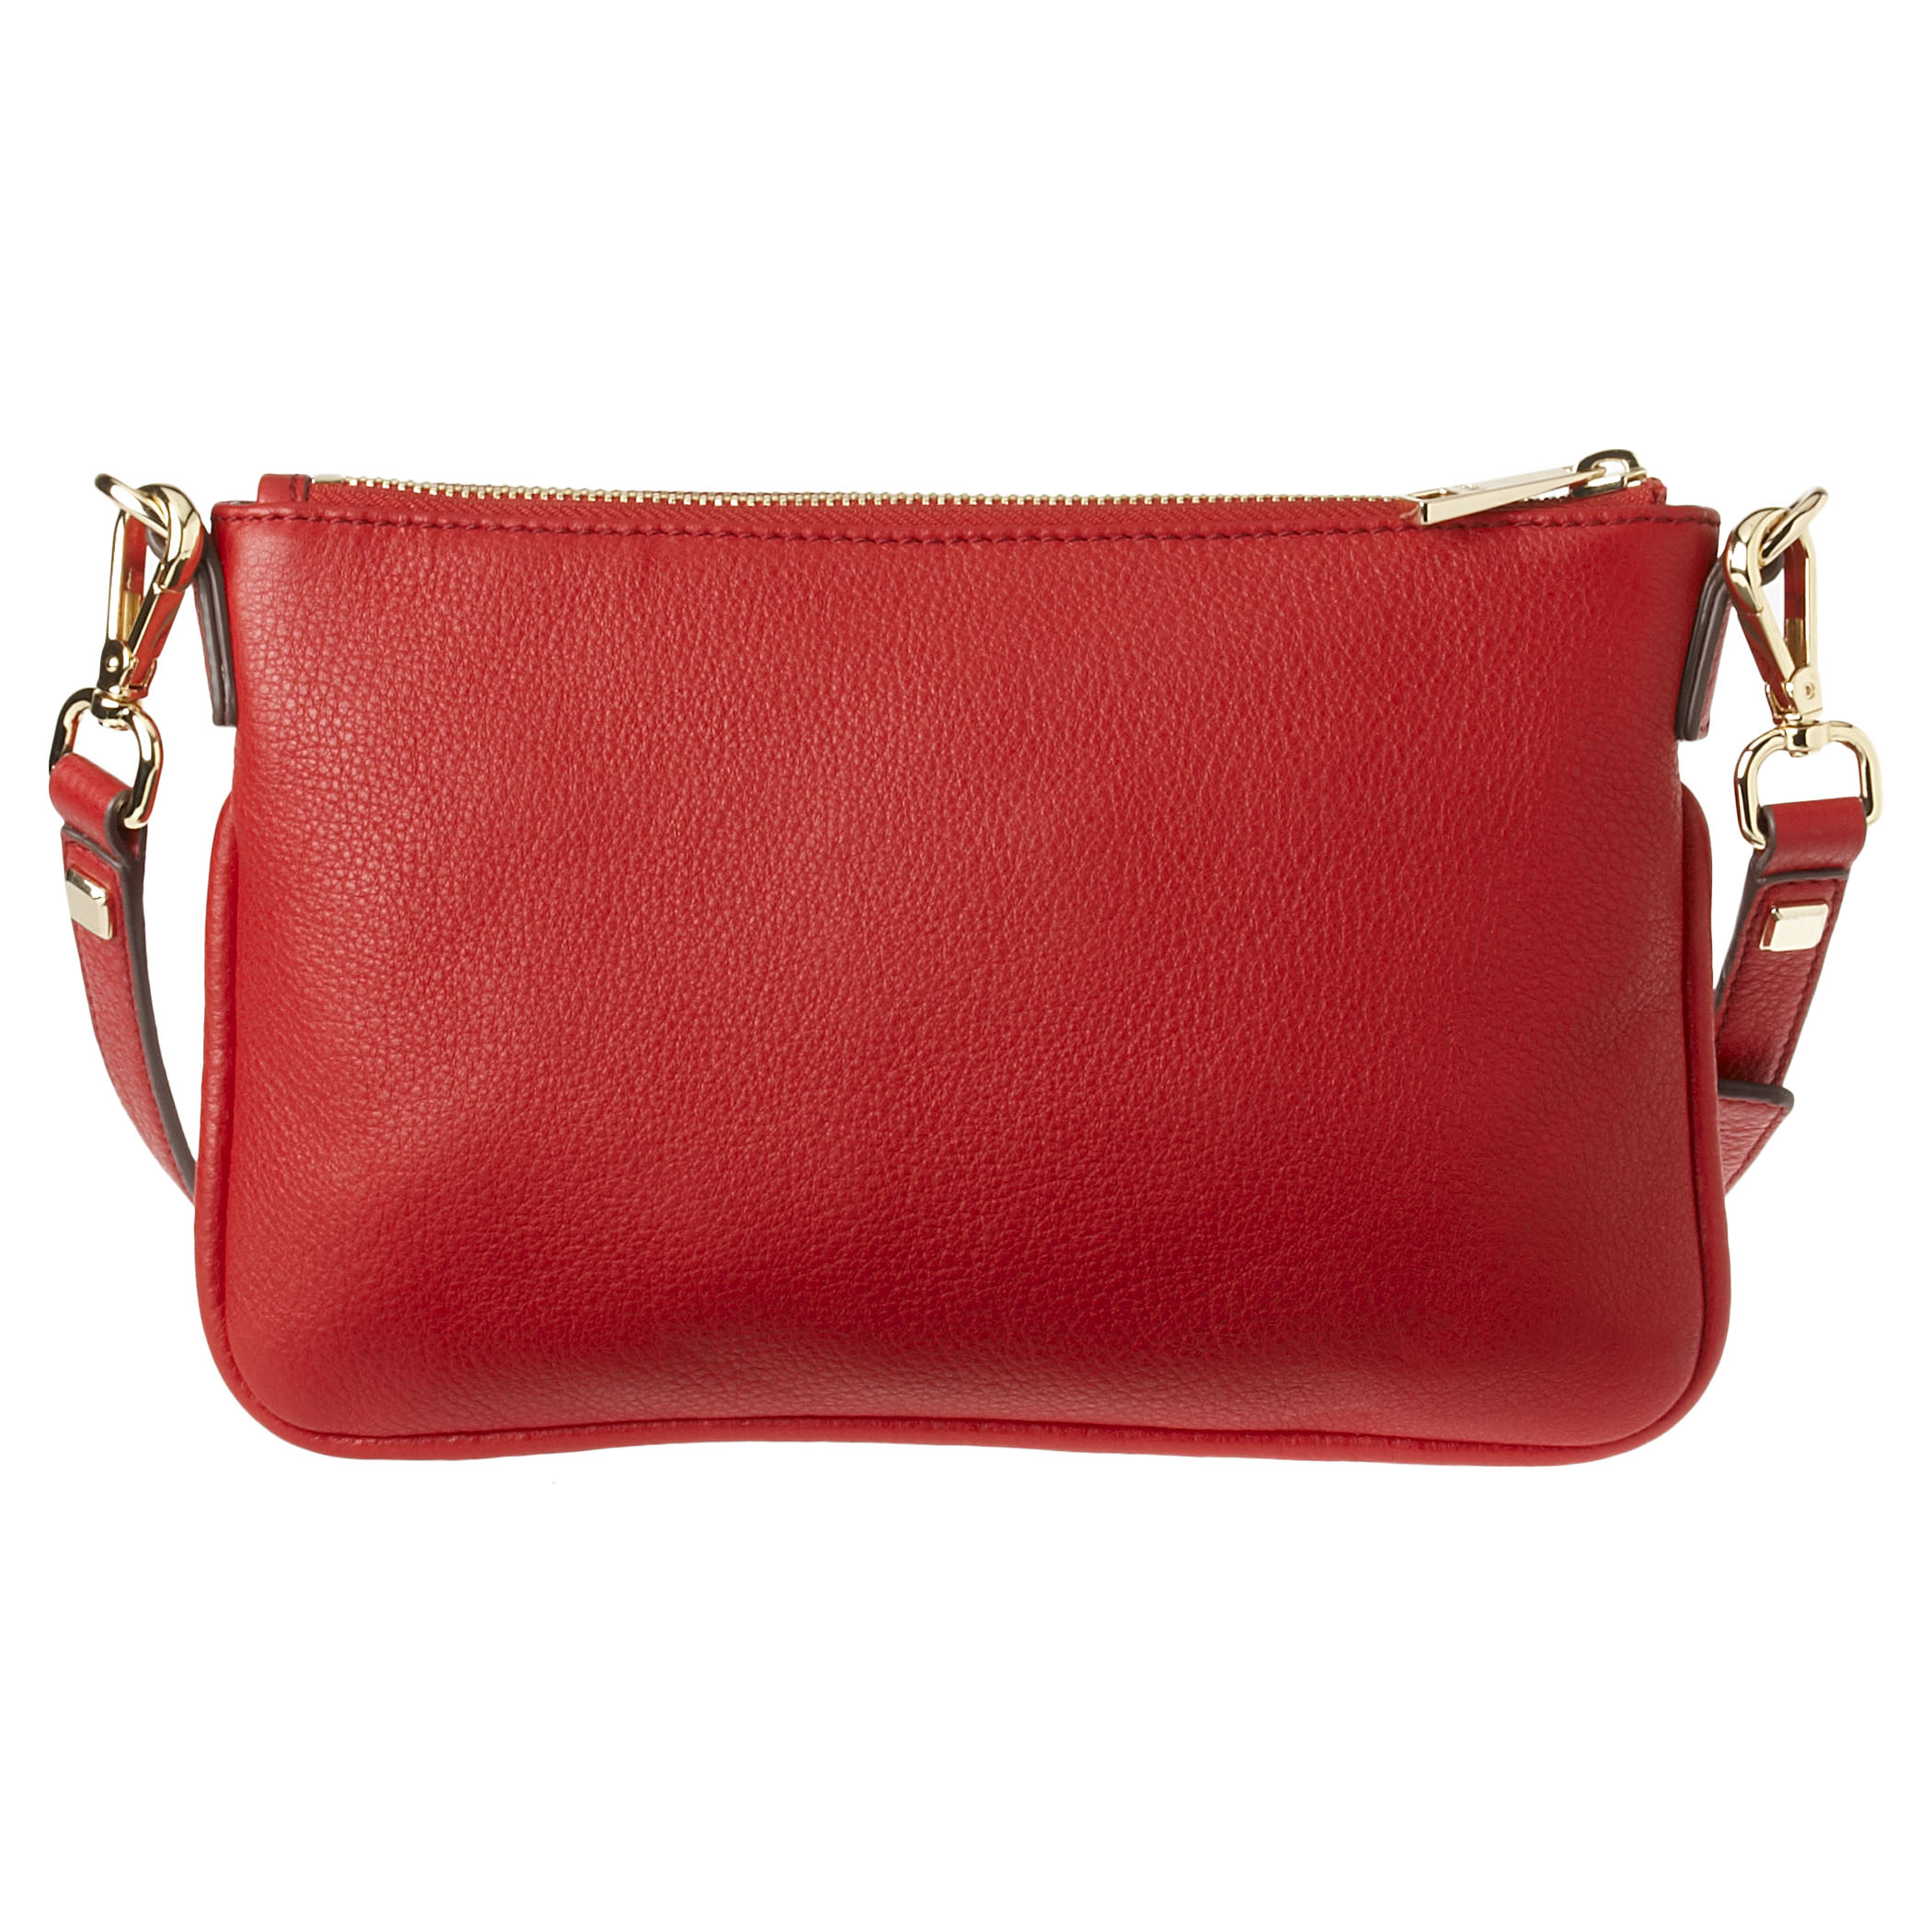 Nine west Hudson Pebbled Leather Crossbody Bag in Red | Lyst